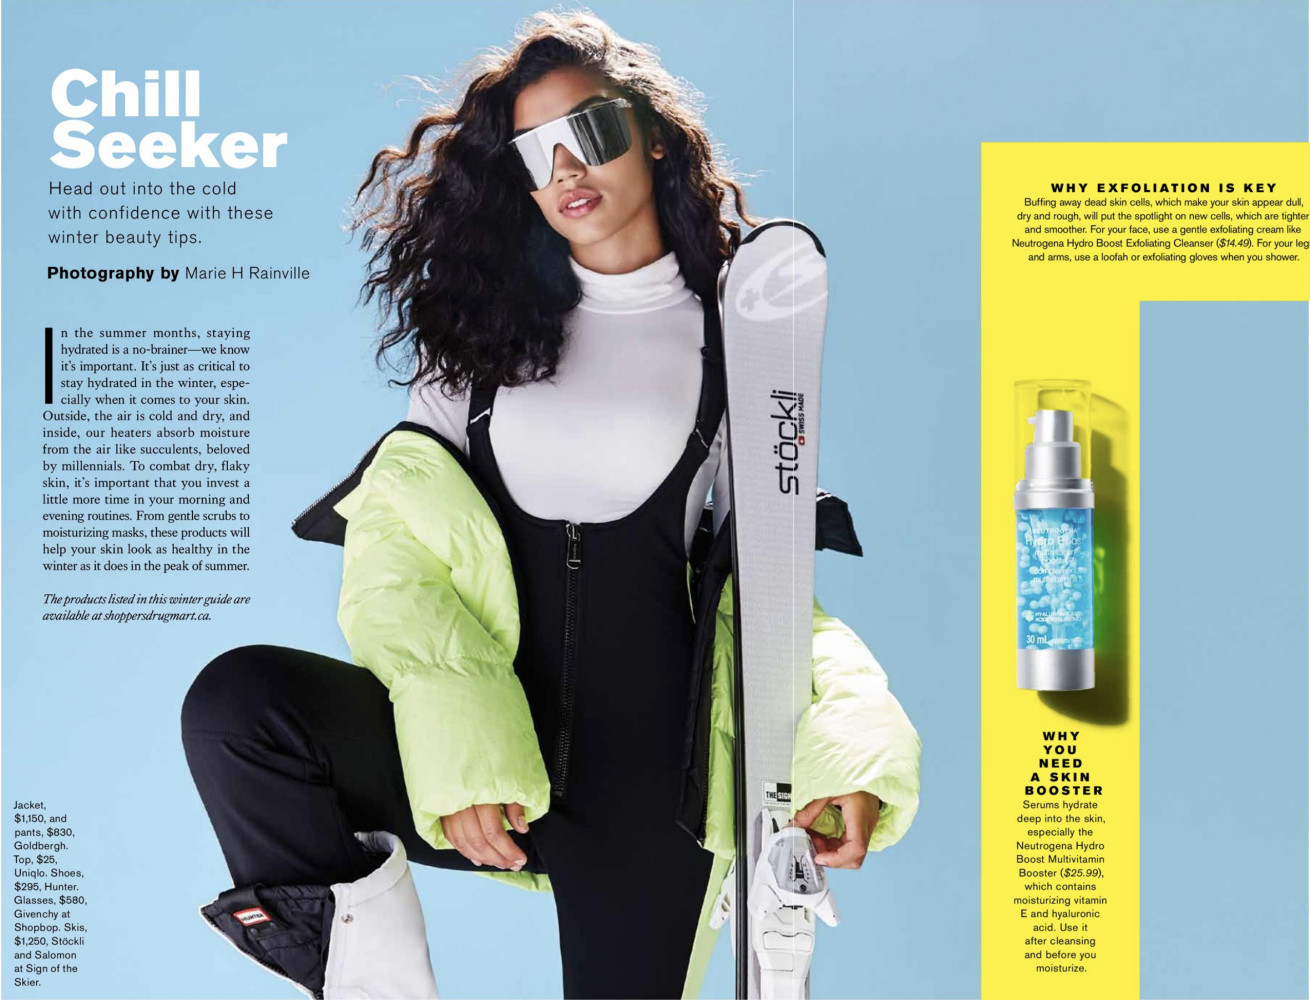 SPOTTED: CHILL SEEKER // FELICIA FOR TORONTO FASHION MAGAZINE